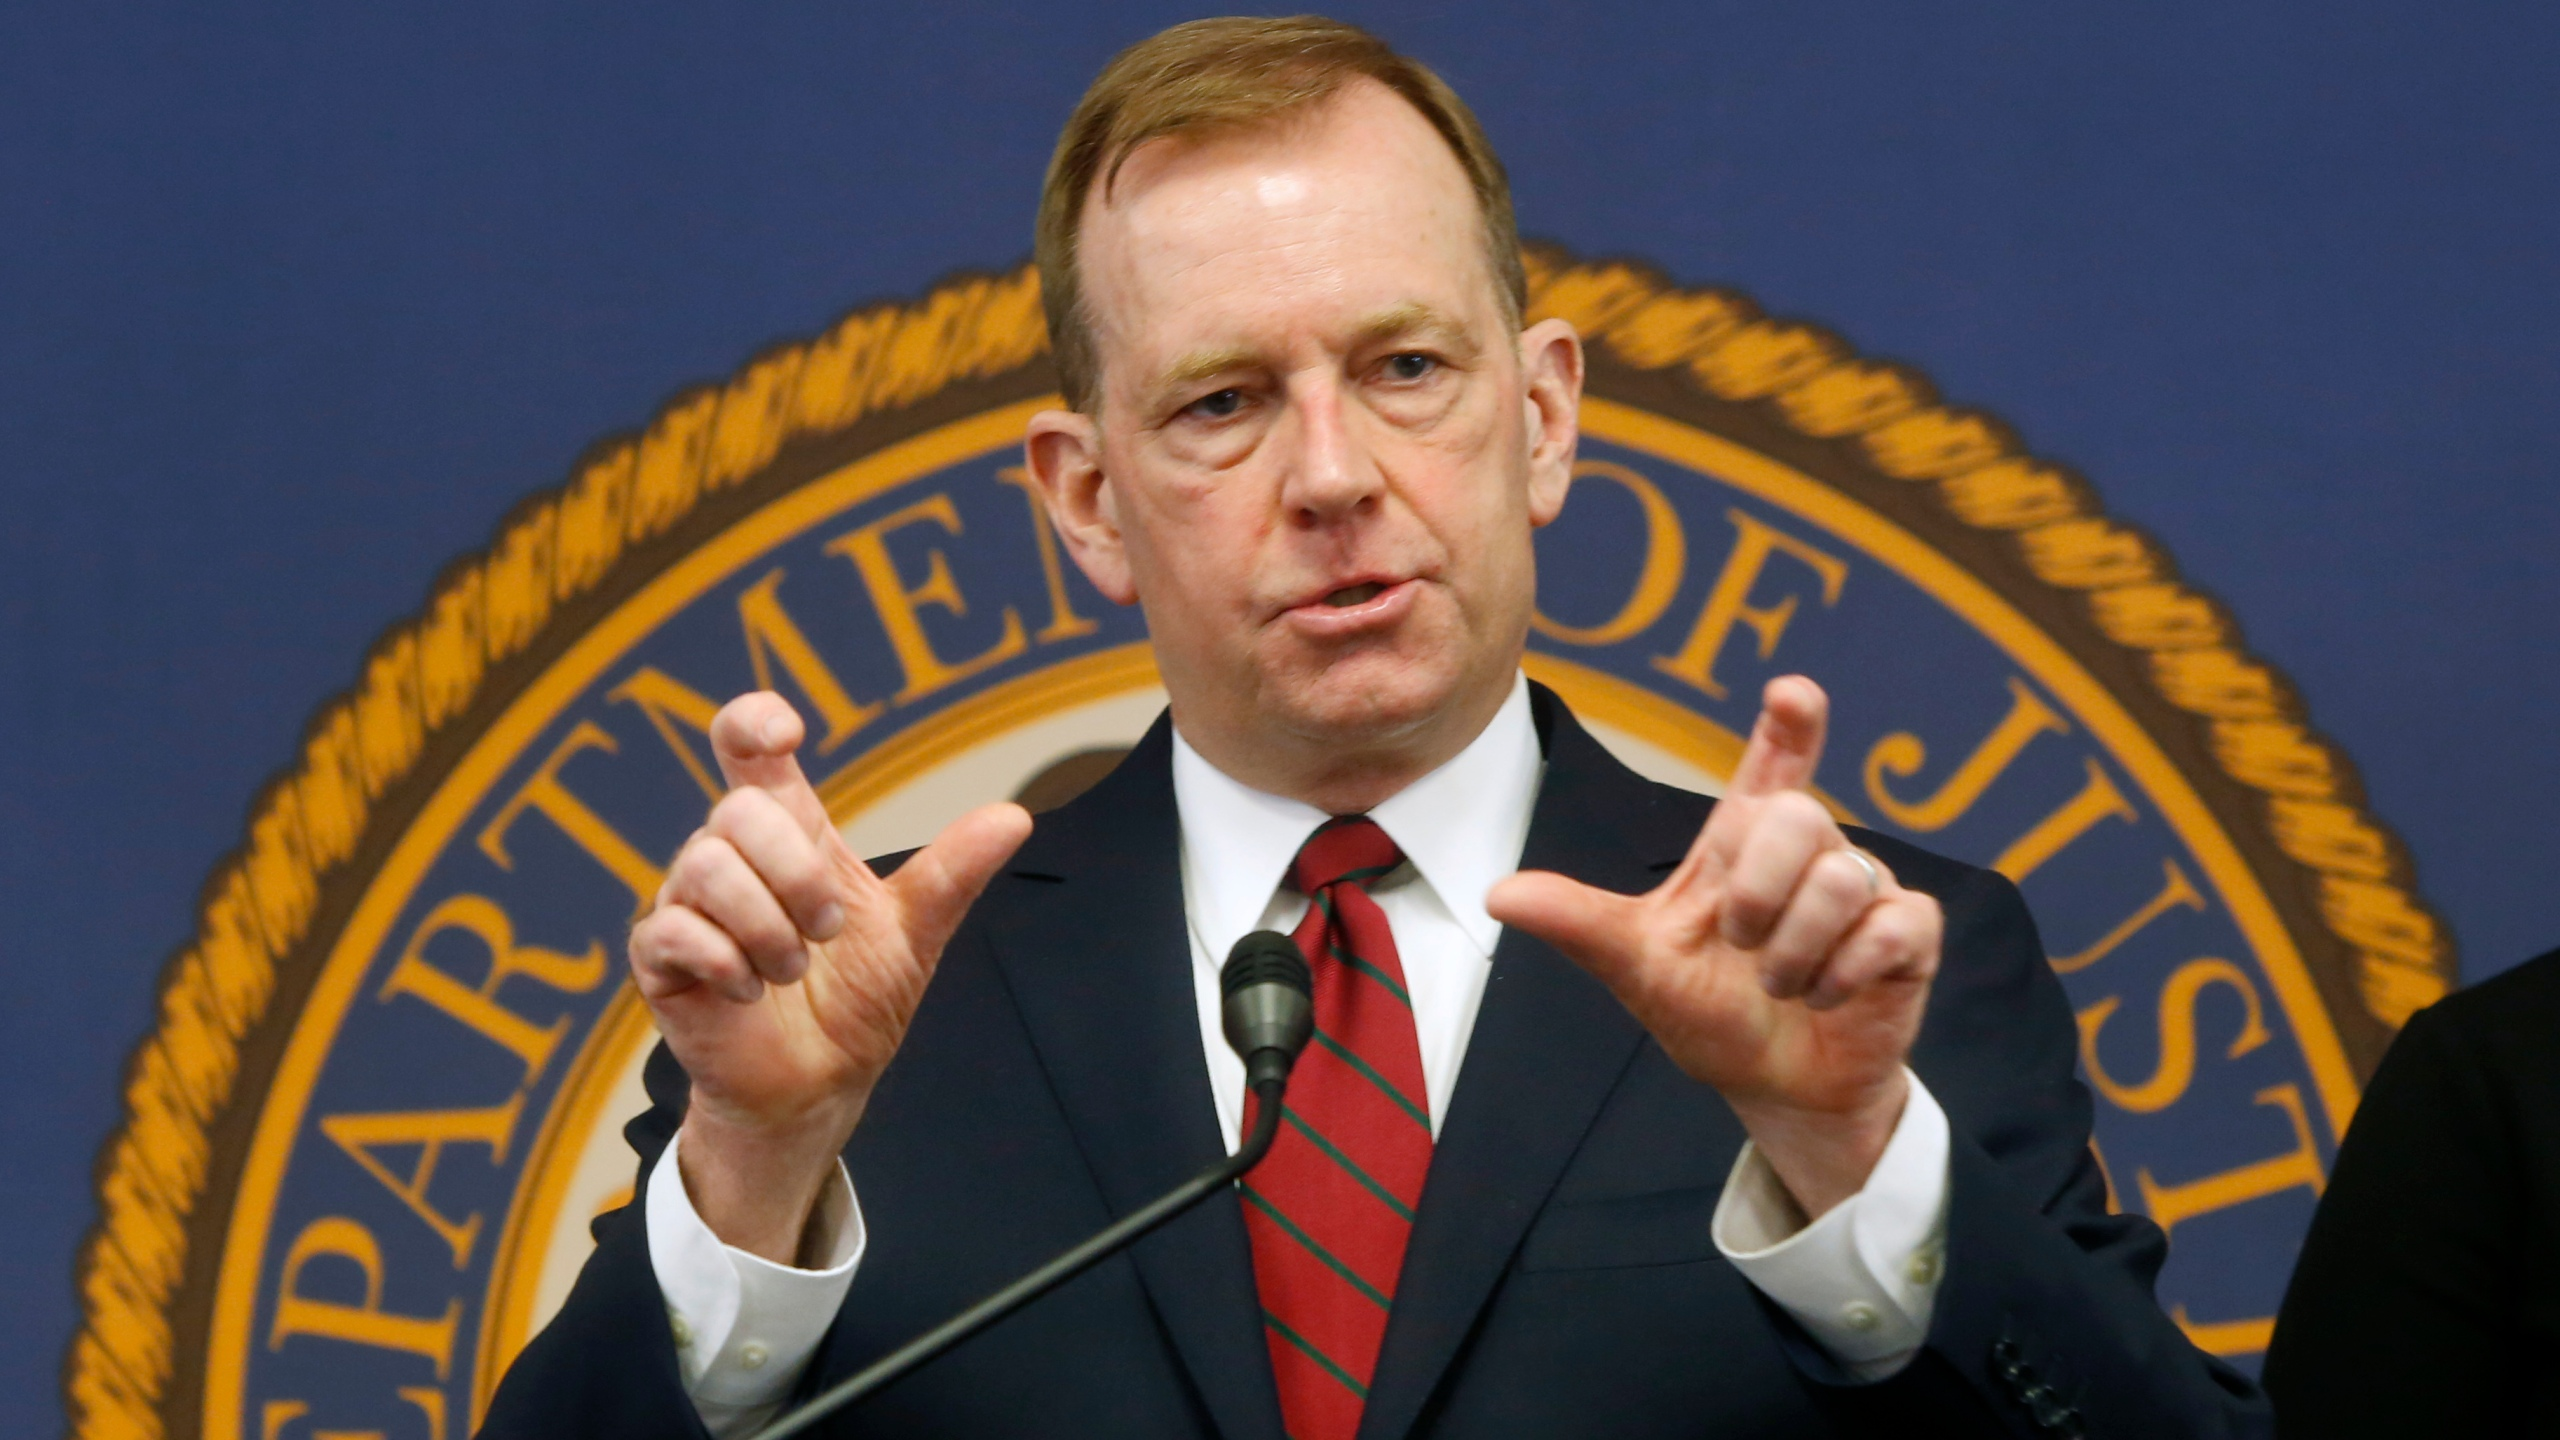 McGregor Scott, the U.S. Attorney for the Eastern District of California, answers questions at a news conference in Sacramento on Jan. 24, 2020. (Rich Pedroncelli / Associated Press)